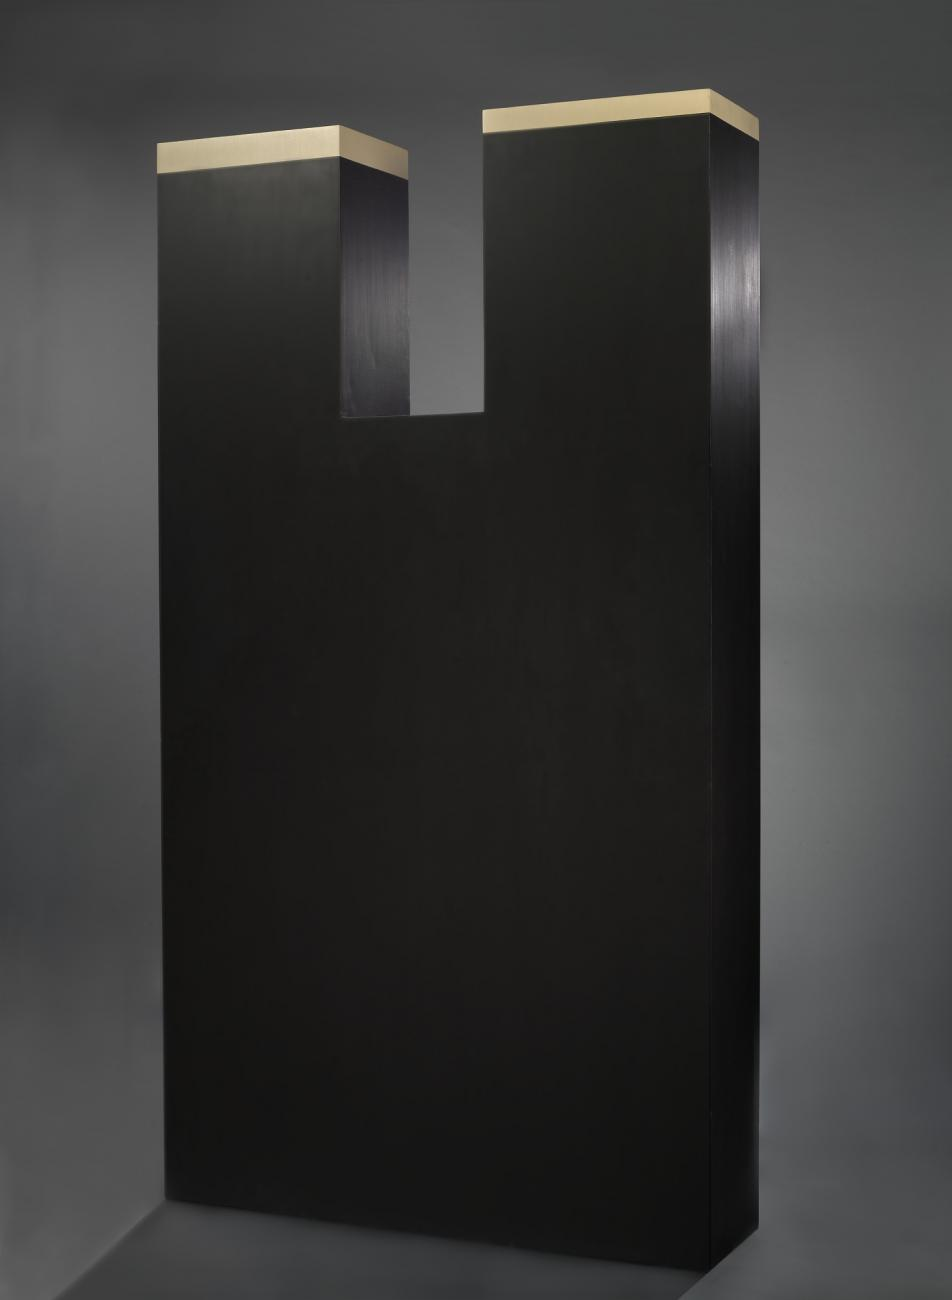 Anne Truitt, Keep, 1962, acrylic on wood, Smithsonian American Art Museum, Gift of Mr. and Mrs. Philip M. Stern